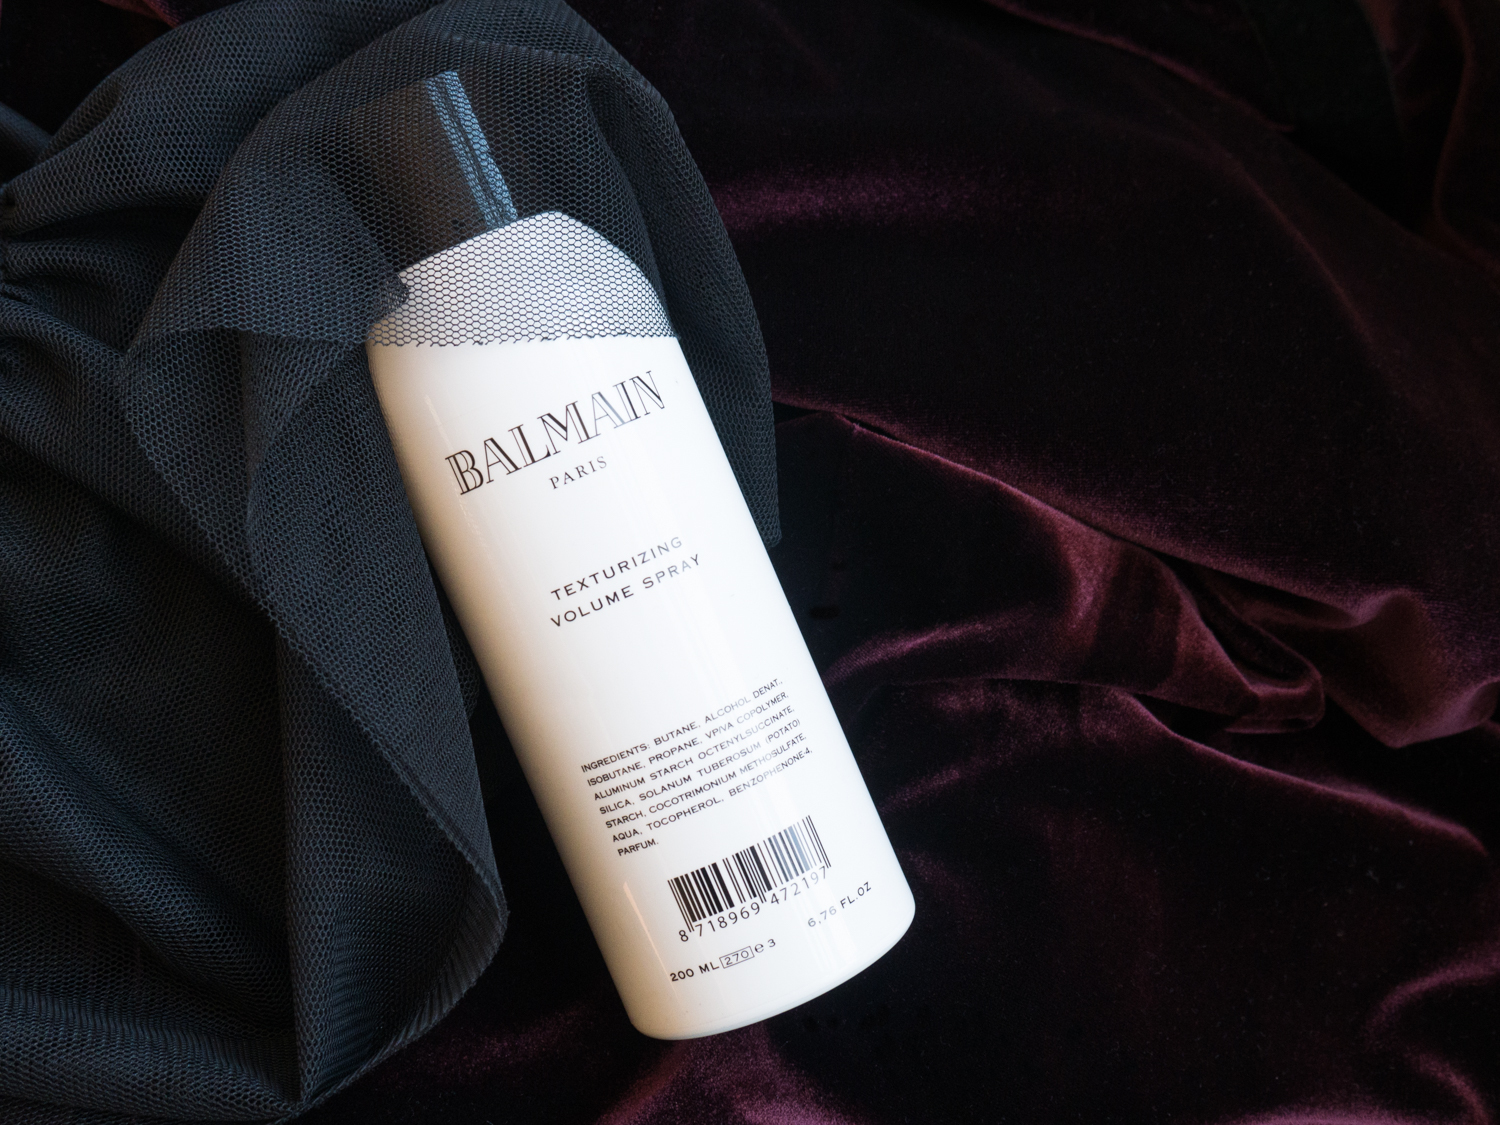 5c181b30 My strawberry fields: BALMAIN: TEXTURIZING VOLUME SPRAY